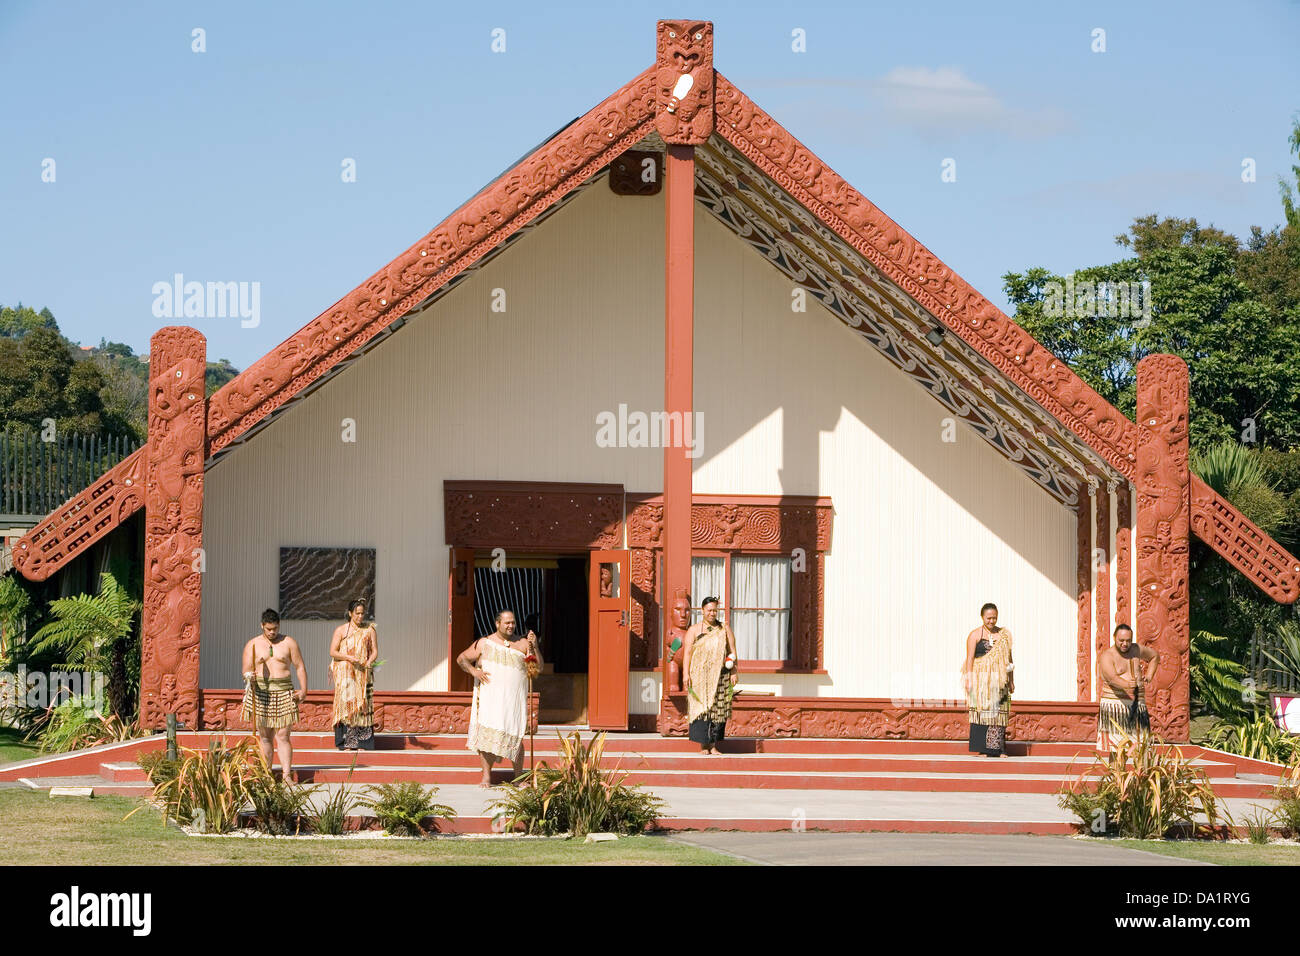 Maori performers assemble out front of Rotowhio Marae, at Te Puia, Rotorua, New Zealand. Stock Photo